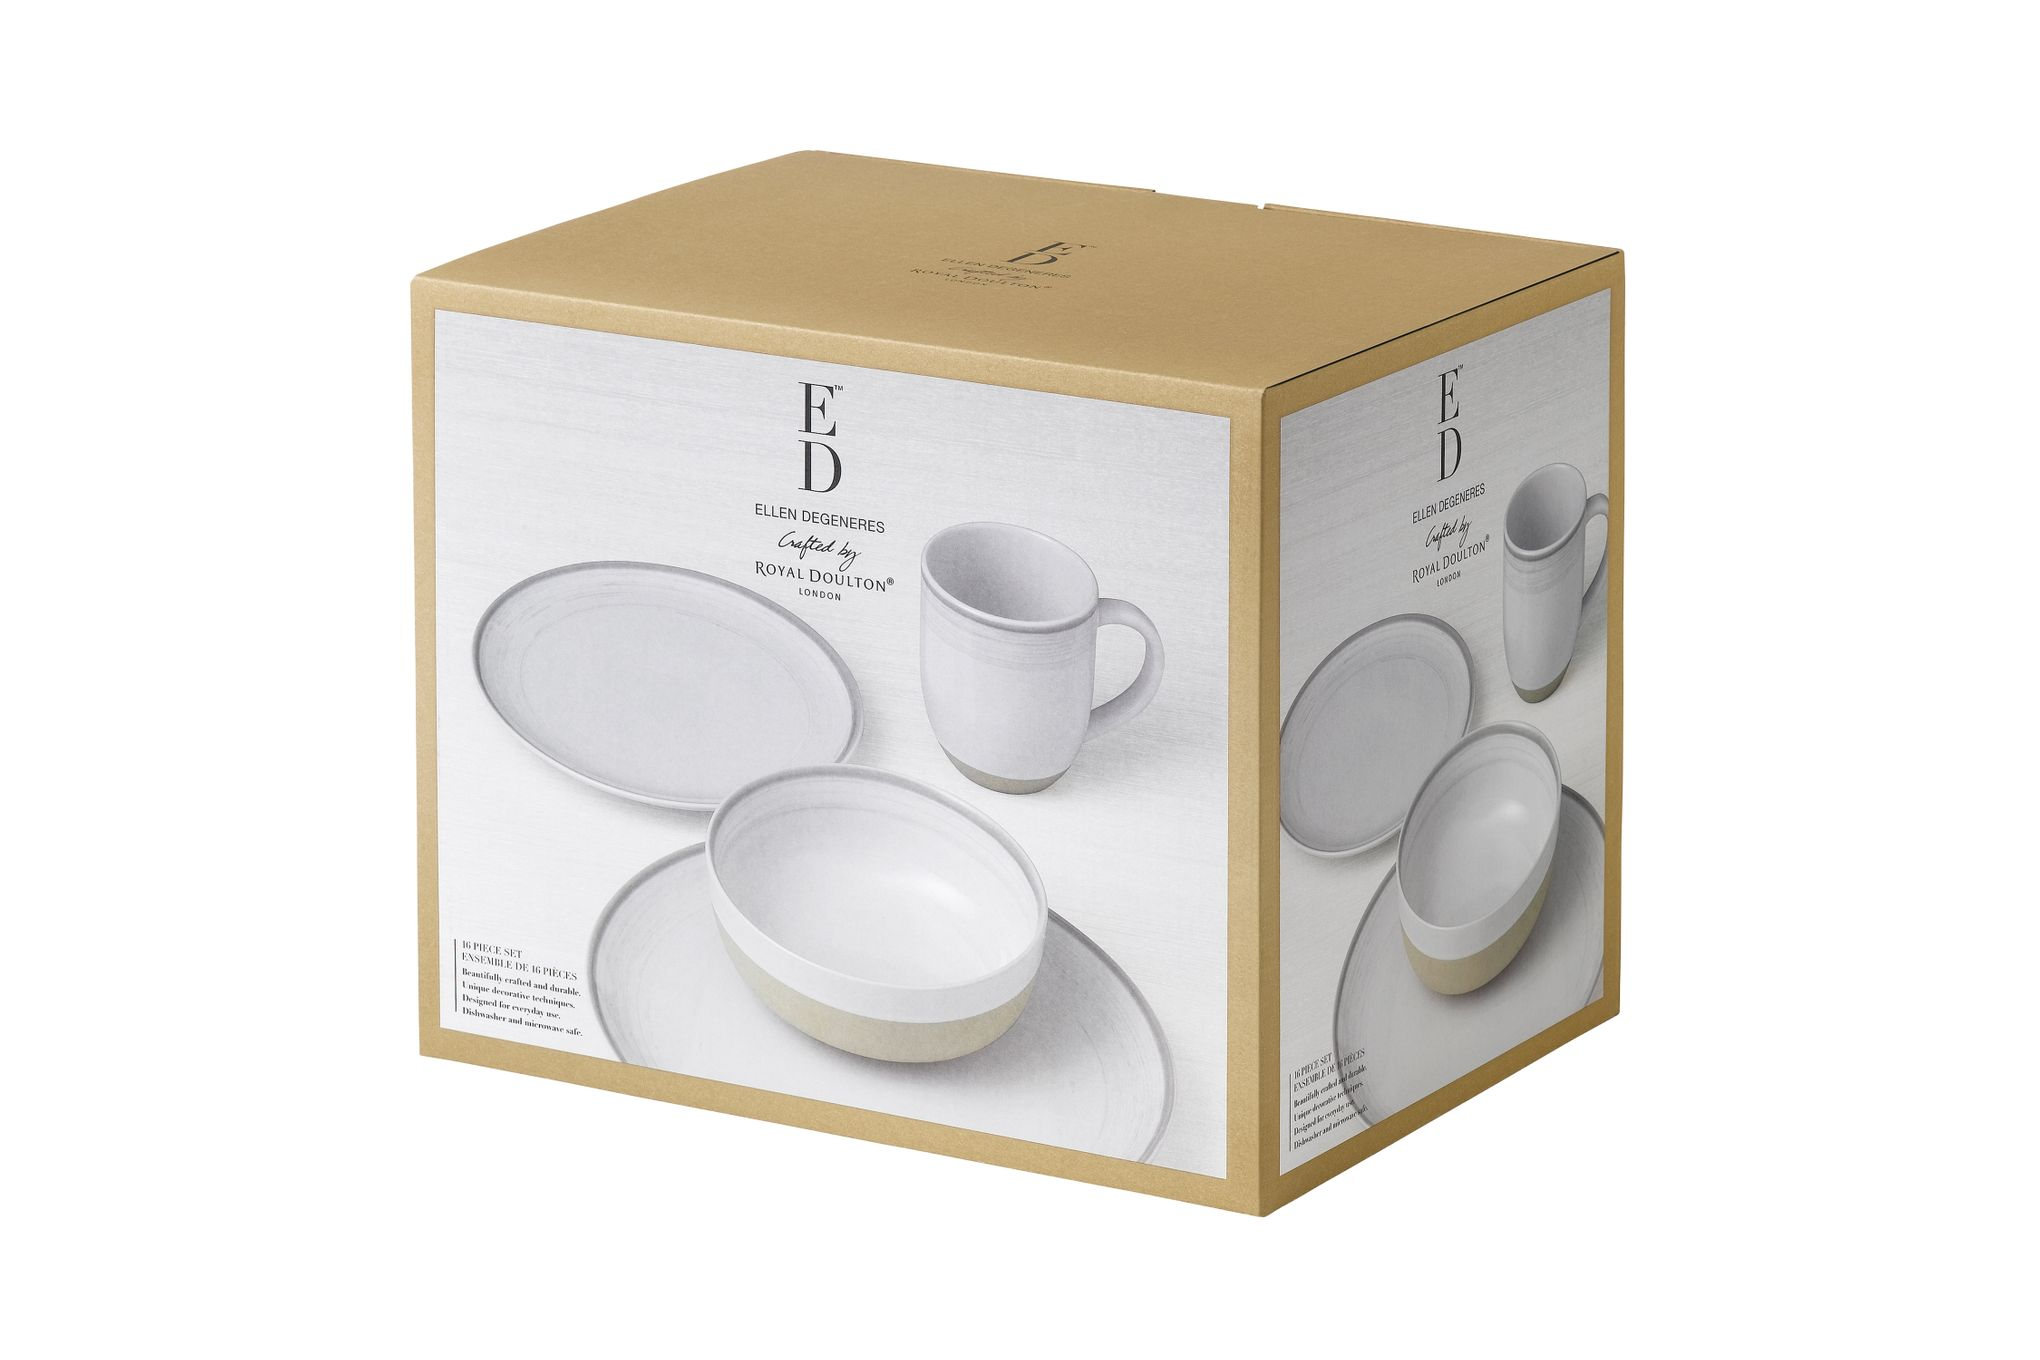 Ellen DeGeneres for Royal Doulton Brushed Glaze Sets 16 Piece Set White thumb 2